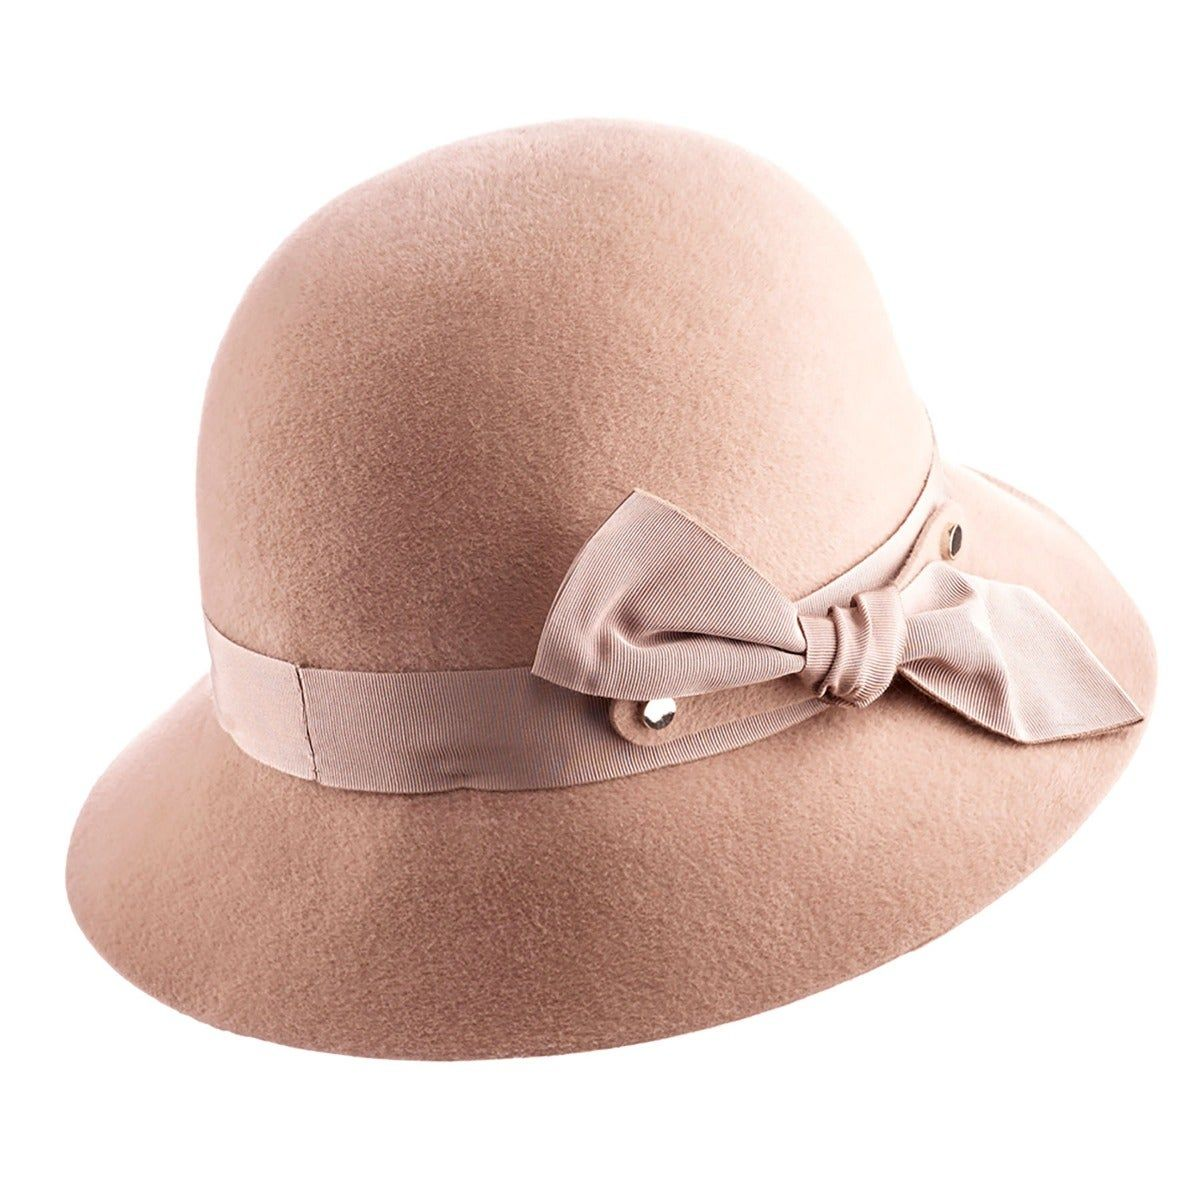 1920s Style Hats For A Vintage Twenties Look Women Hats Fashion 1940s Hats Hats For Women